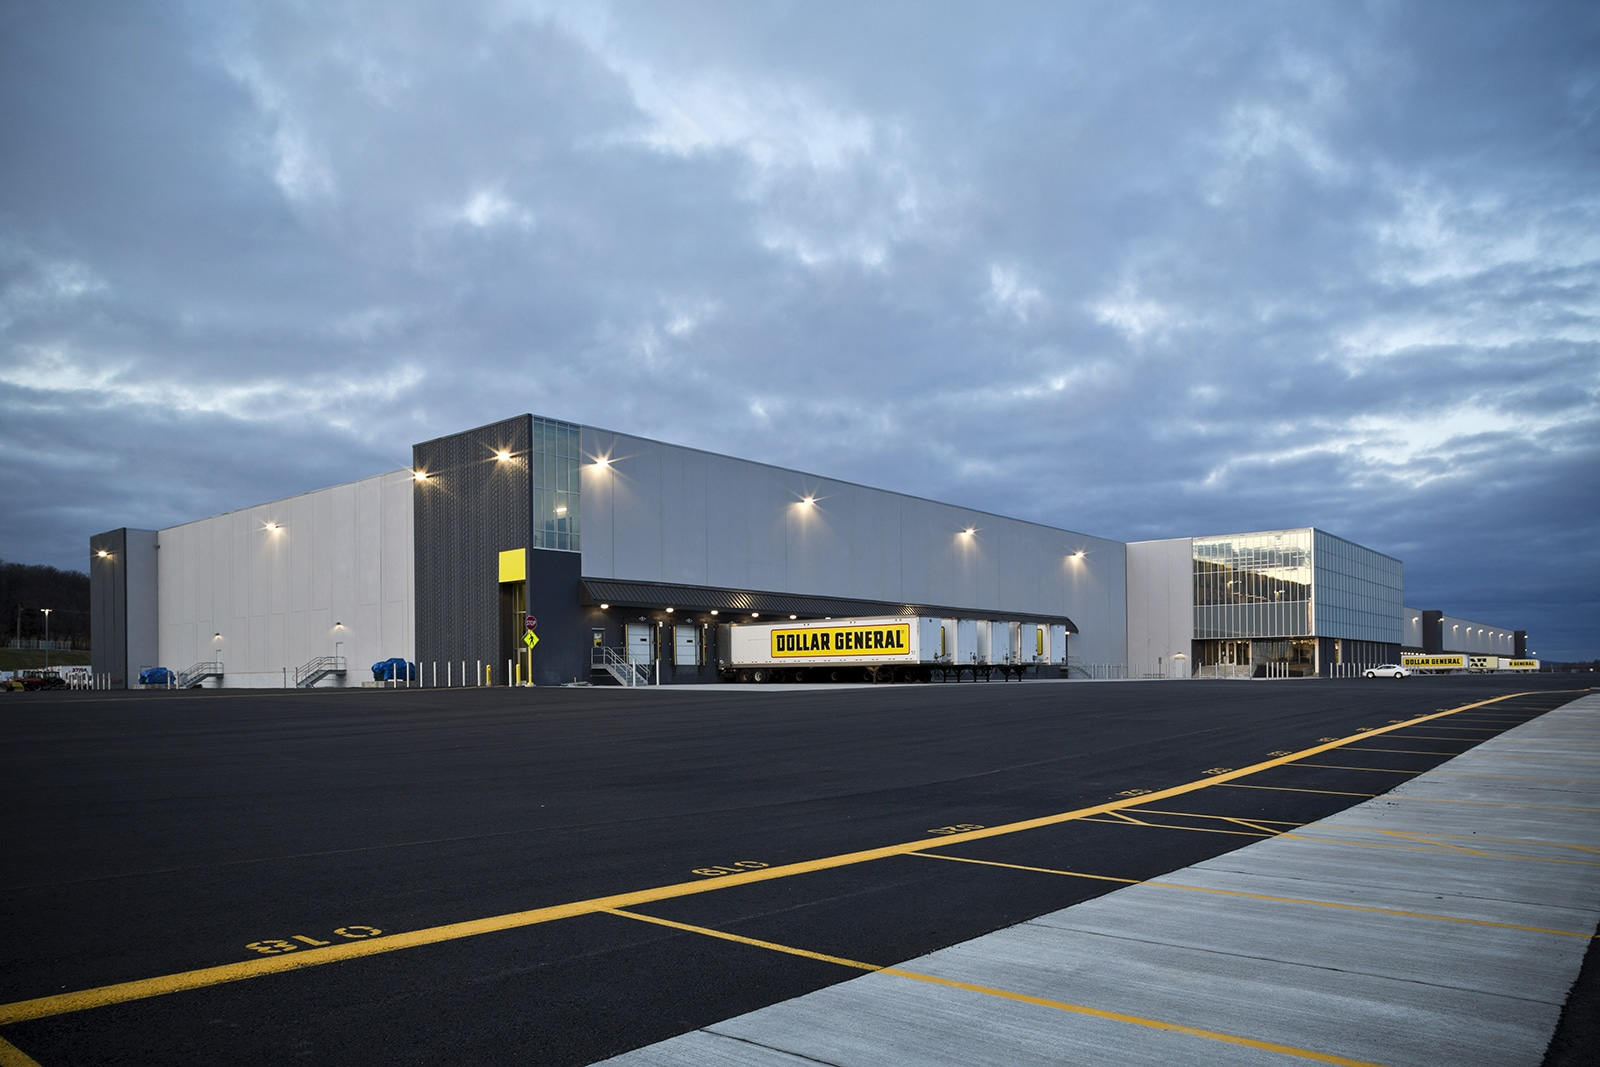 Dollar General Warehouse and Distribution Facility Exterior